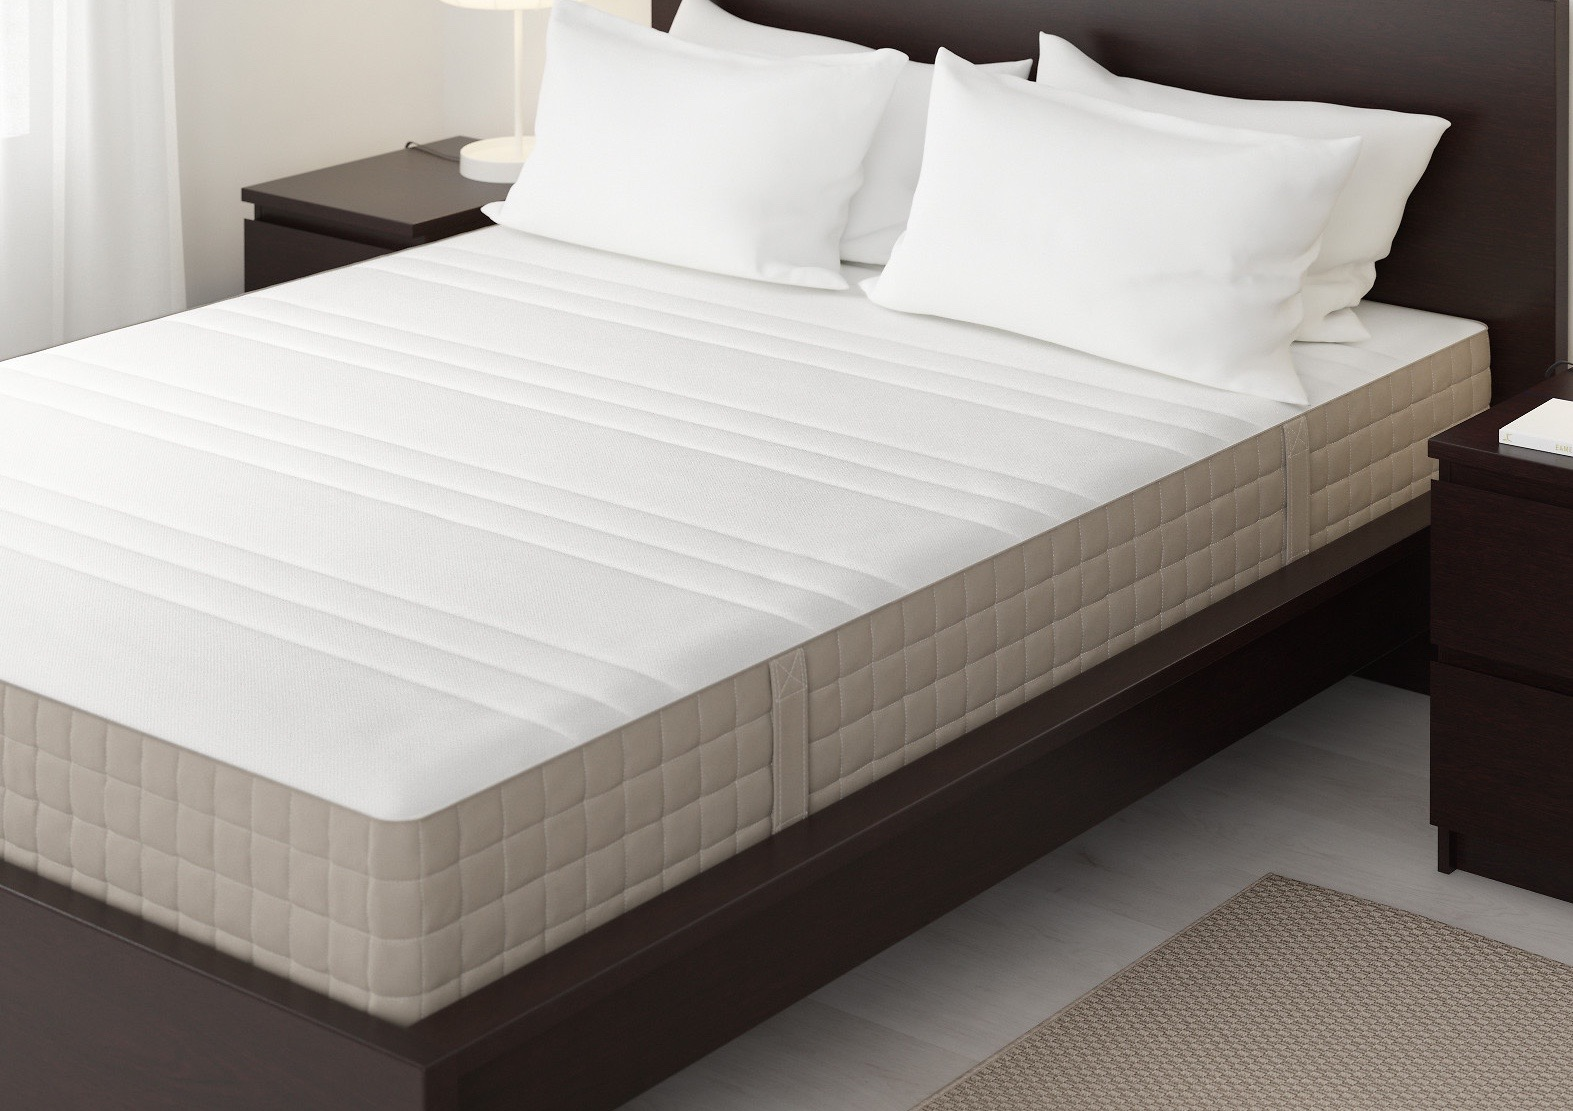 Abaca Mattress The Living Clean Guide To Less Toxic And Non Toxic Mattress